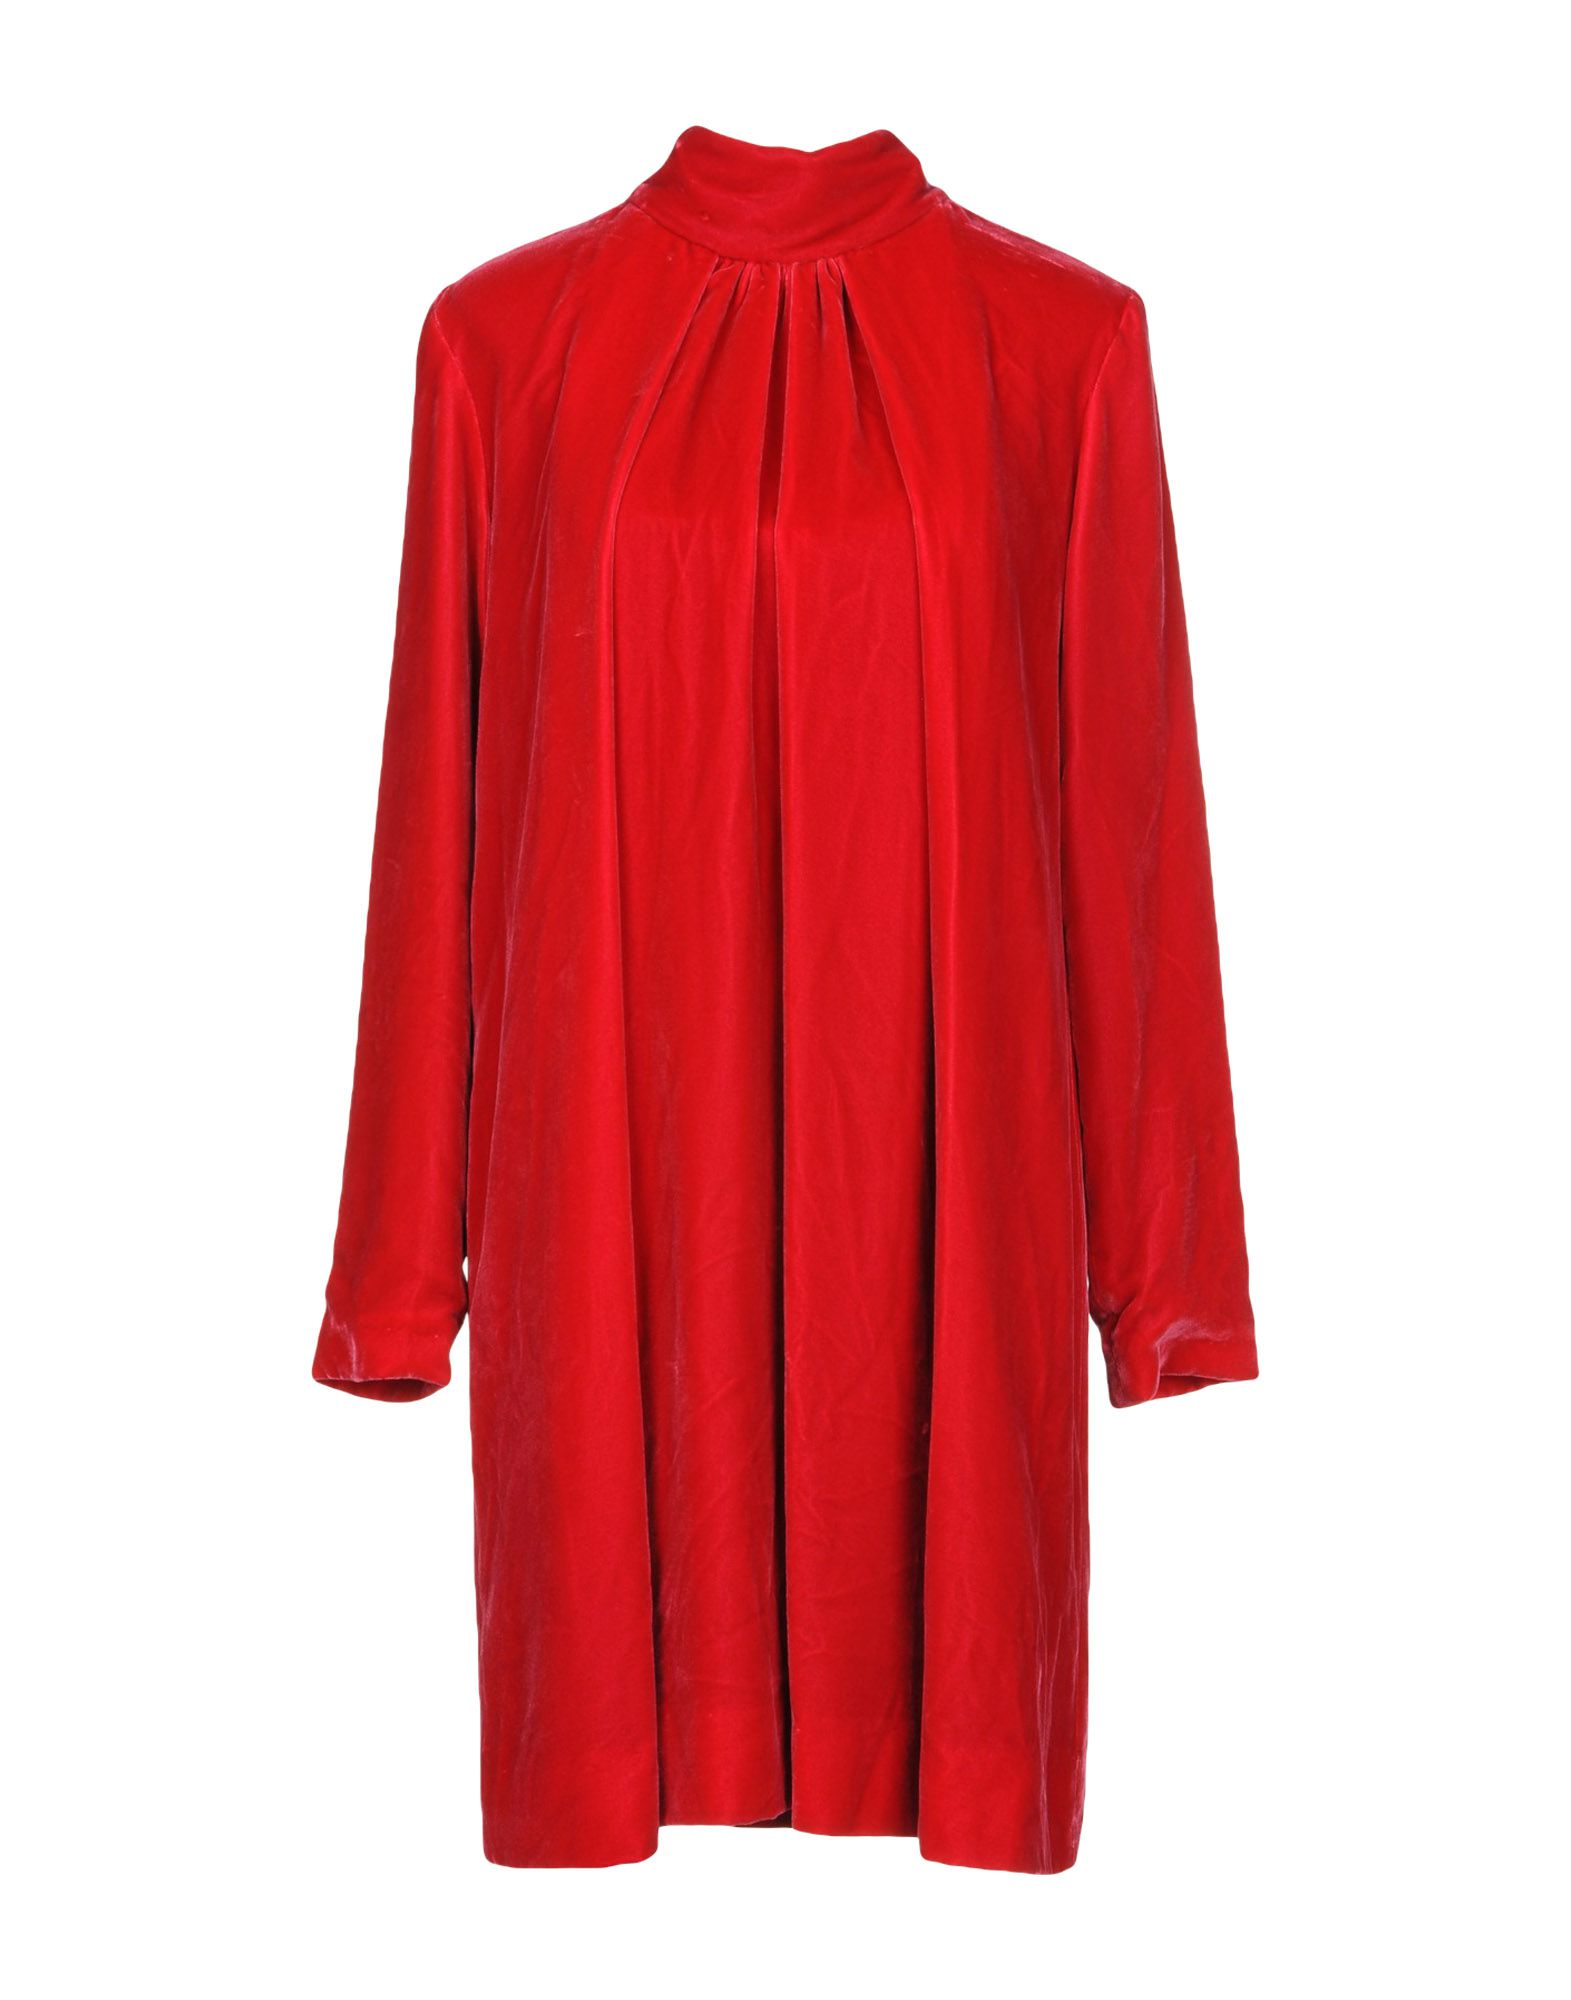 BY. BONNIE YOUNG Short Dress in Red